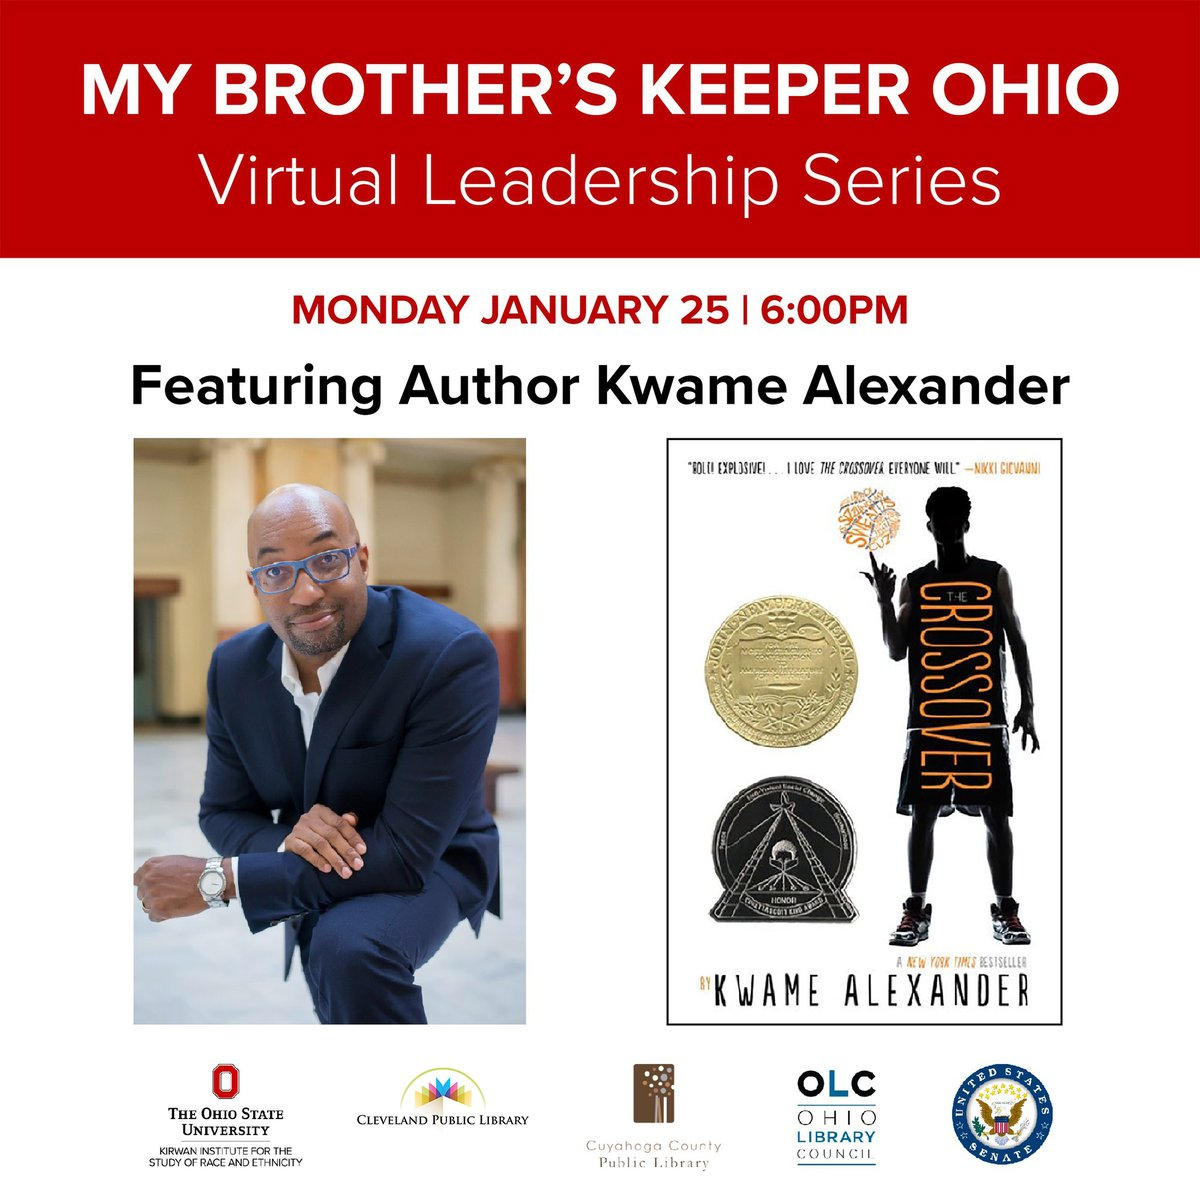 Tonight! Join us, @CuyahogaLib, & @OhioLibraryCncl for a virtual conversation with award-winning author @kwamealexander as we kick off a new book club for #MBKOhio. @SenSherrodBrown will give opening remarks. The event is free & open to the public. RSVP: